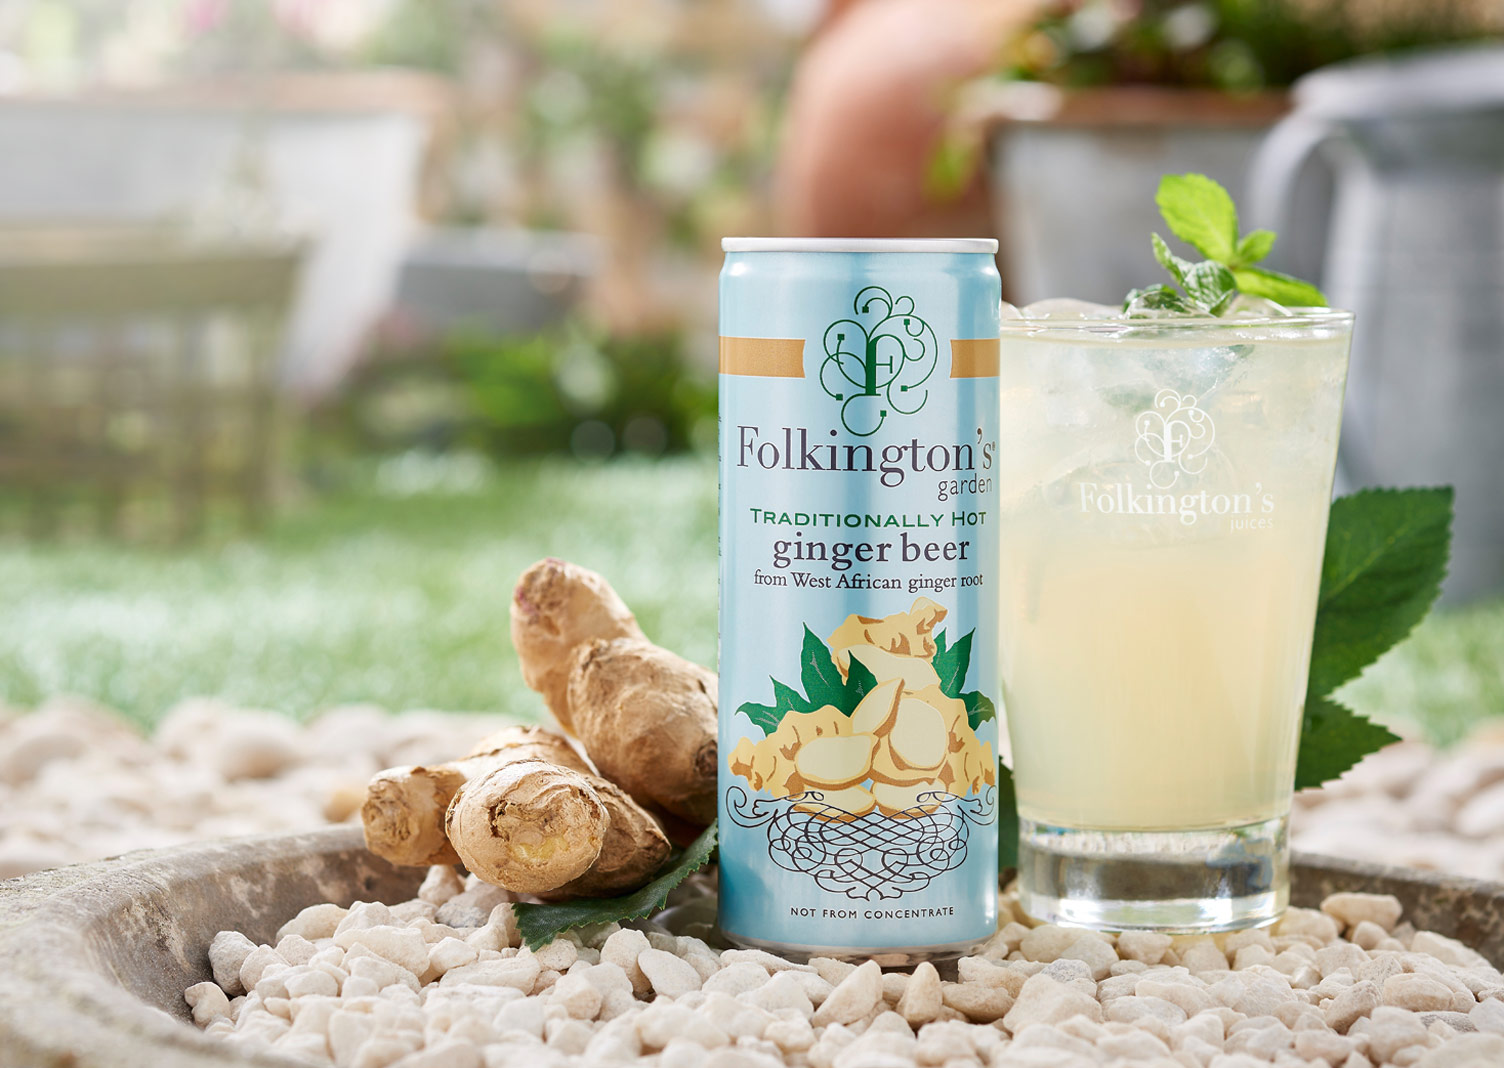 Folkingtons Garden Range Ginger Beer